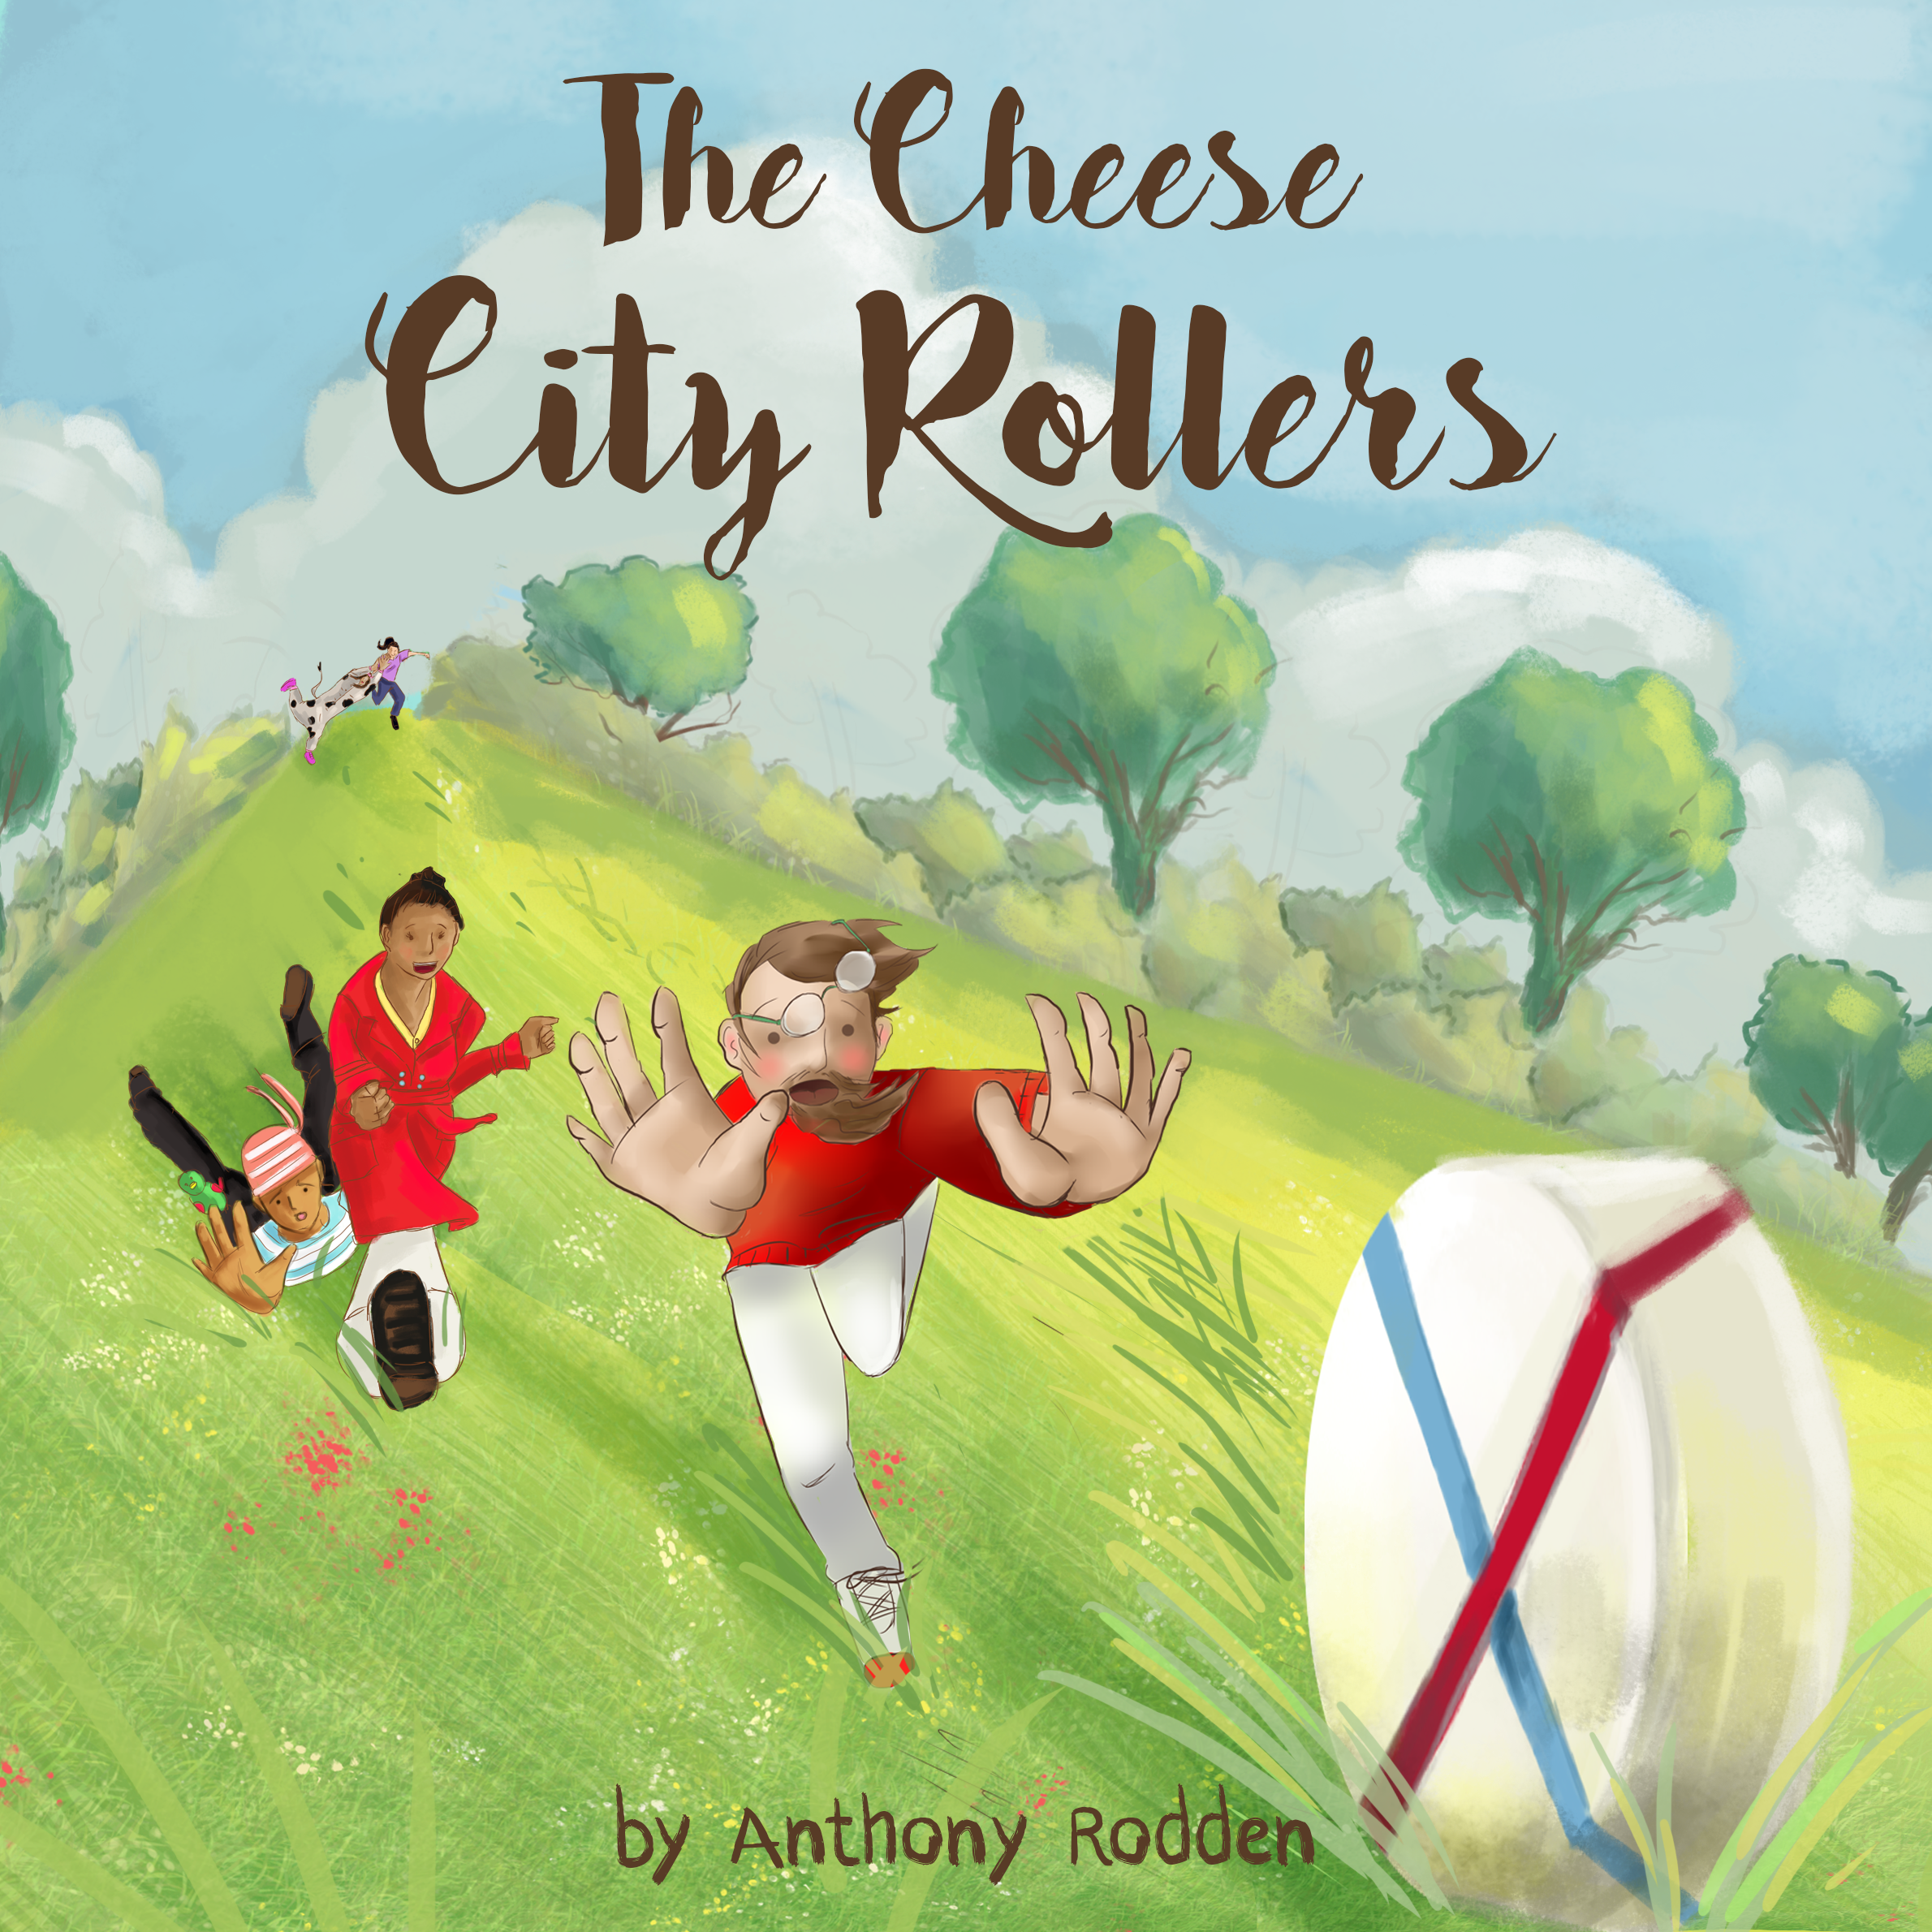 The Cheese City Rollers